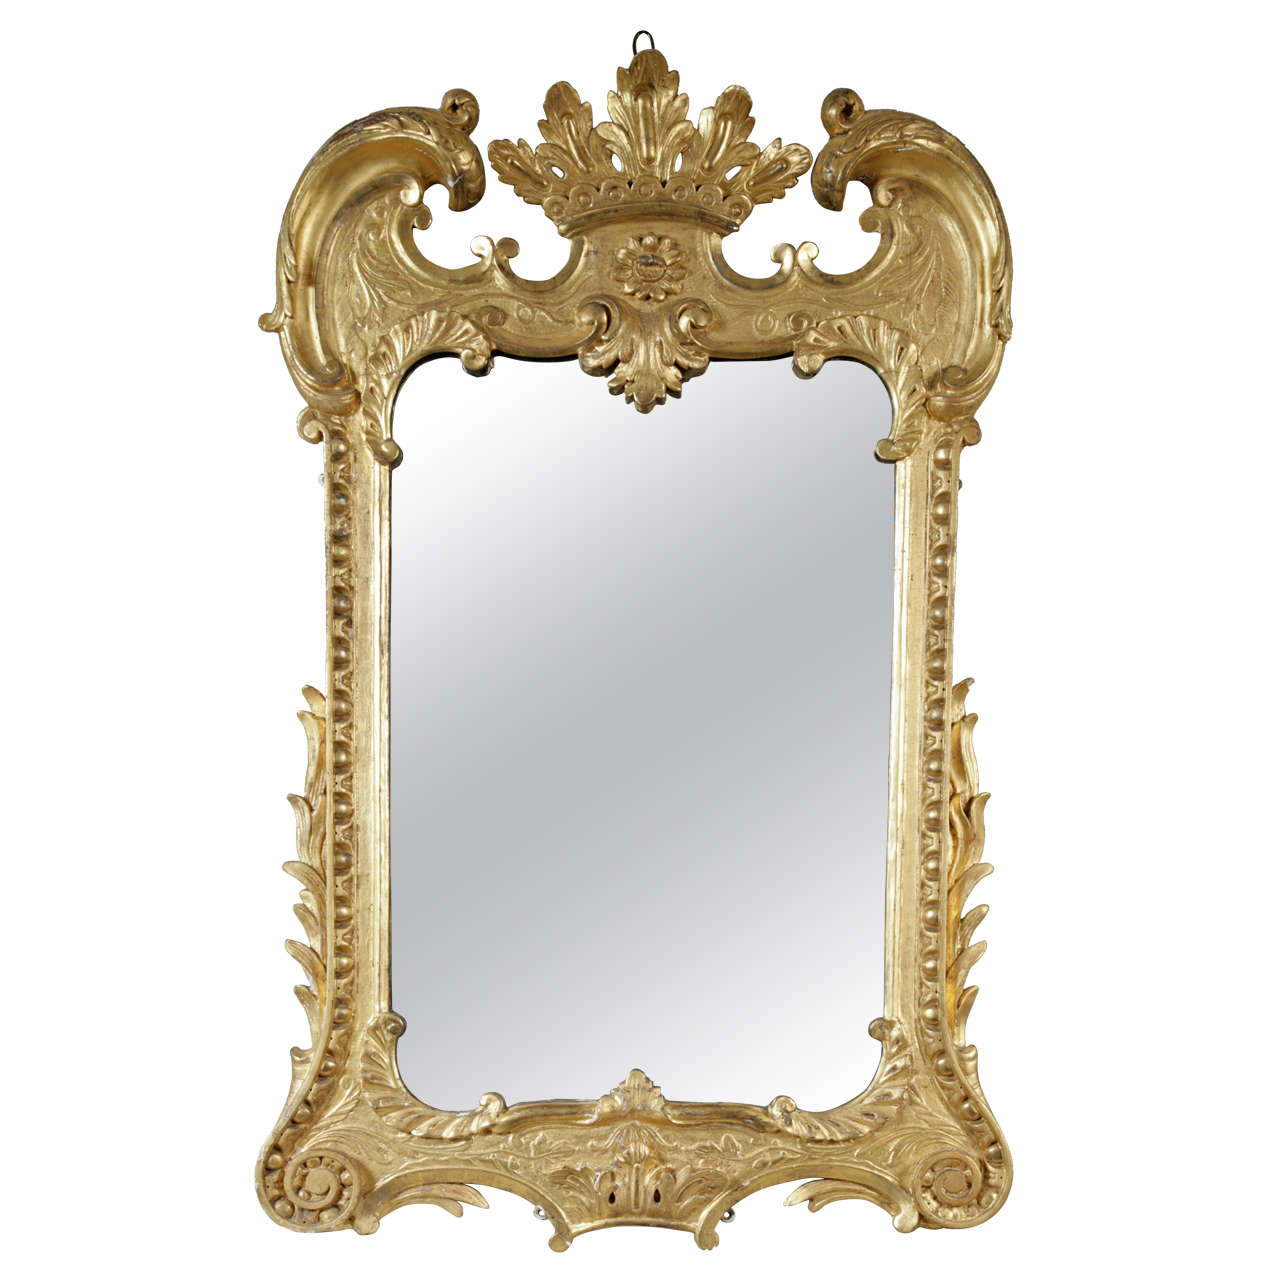 An Unusual 18th Century carved Giltwood Wall Mirror